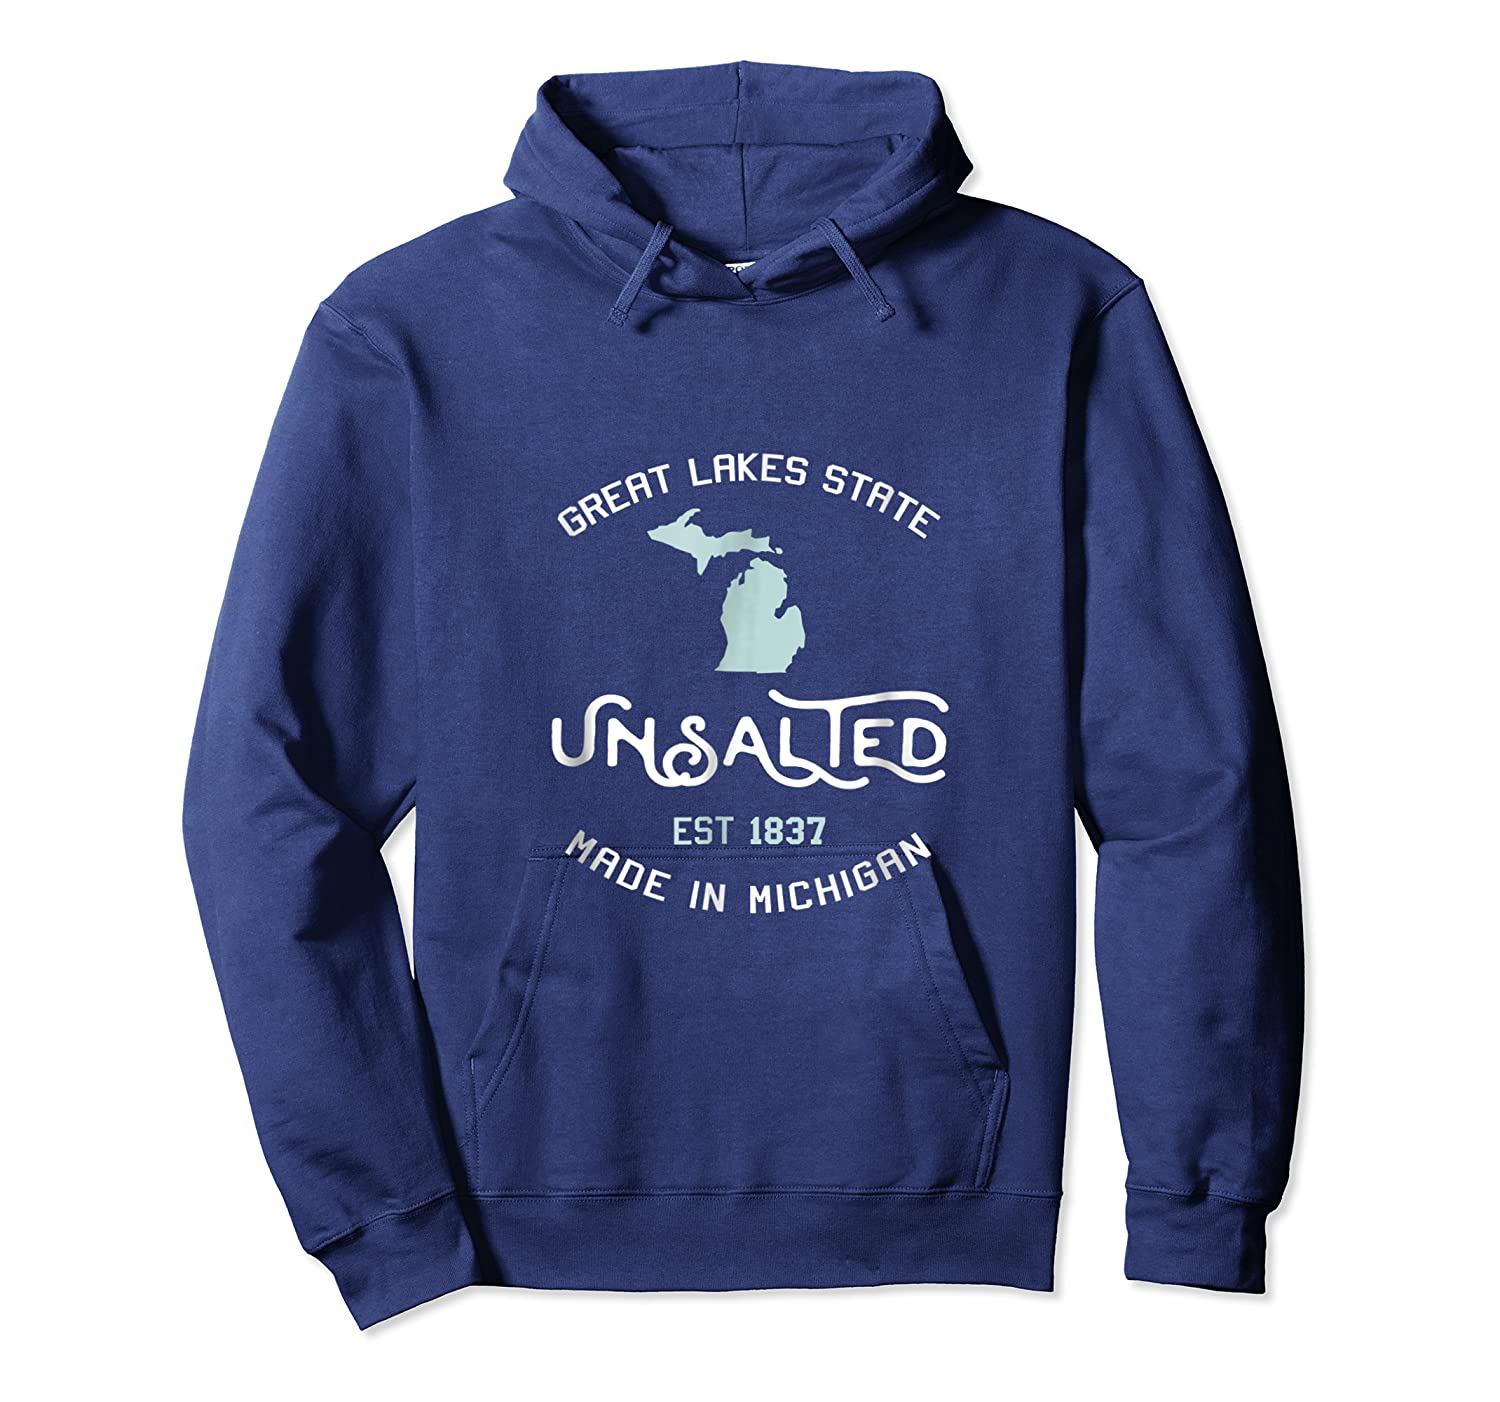 Great Lakes State Unsalted Est 1837 Made In Michigan T-shirt Unisex Pullover Hoodie